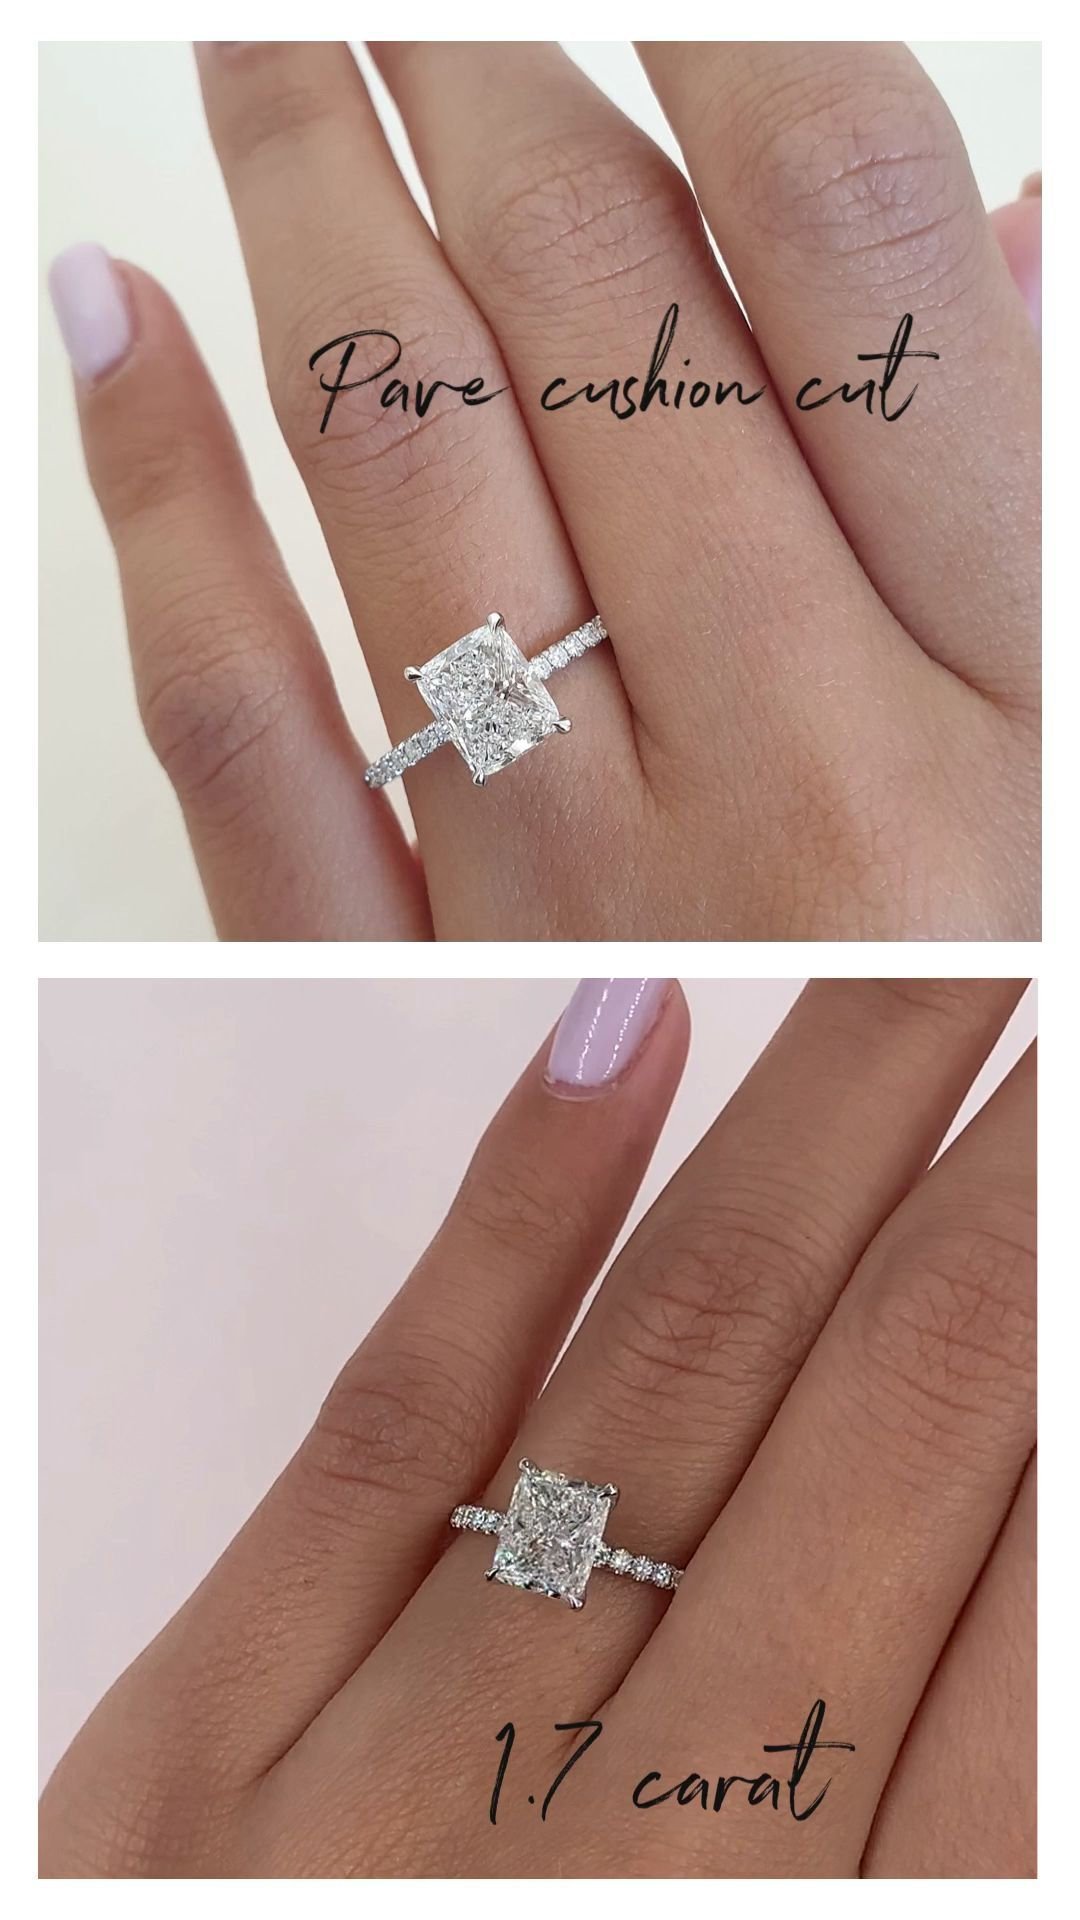 Pin By Carine Kamwanya On Carine In 2020 Dream Engagement Rings